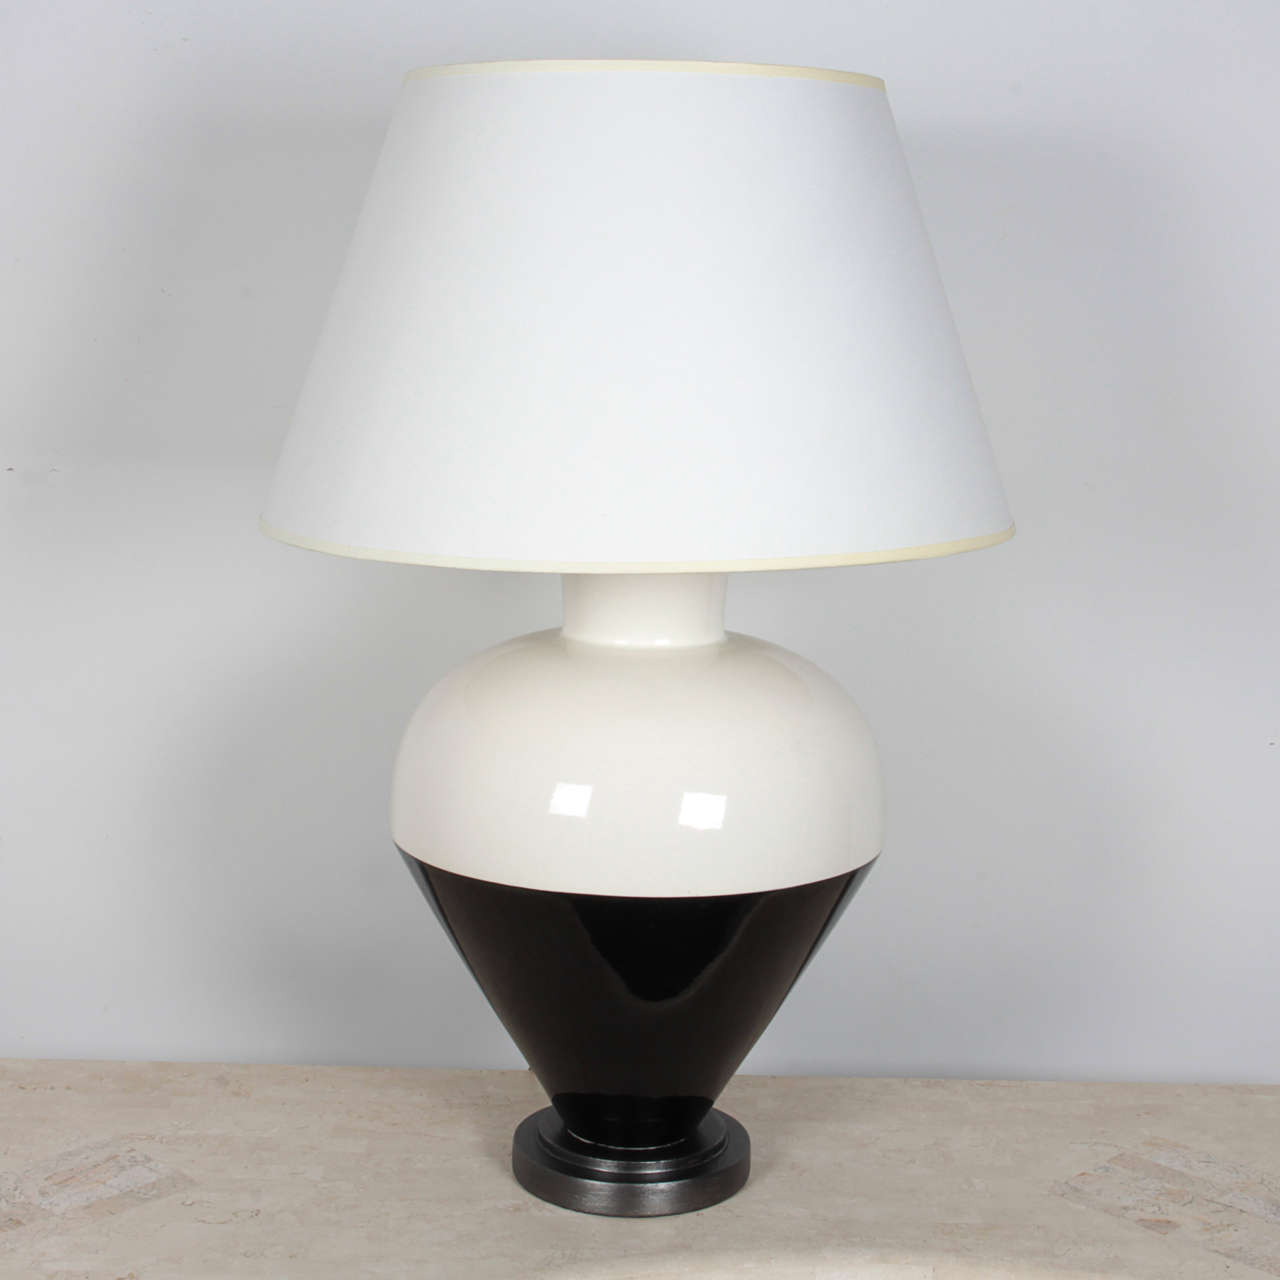 italian black and white ceramic table lamps is no longer available. Black Bedroom Furniture Sets. Home Design Ideas